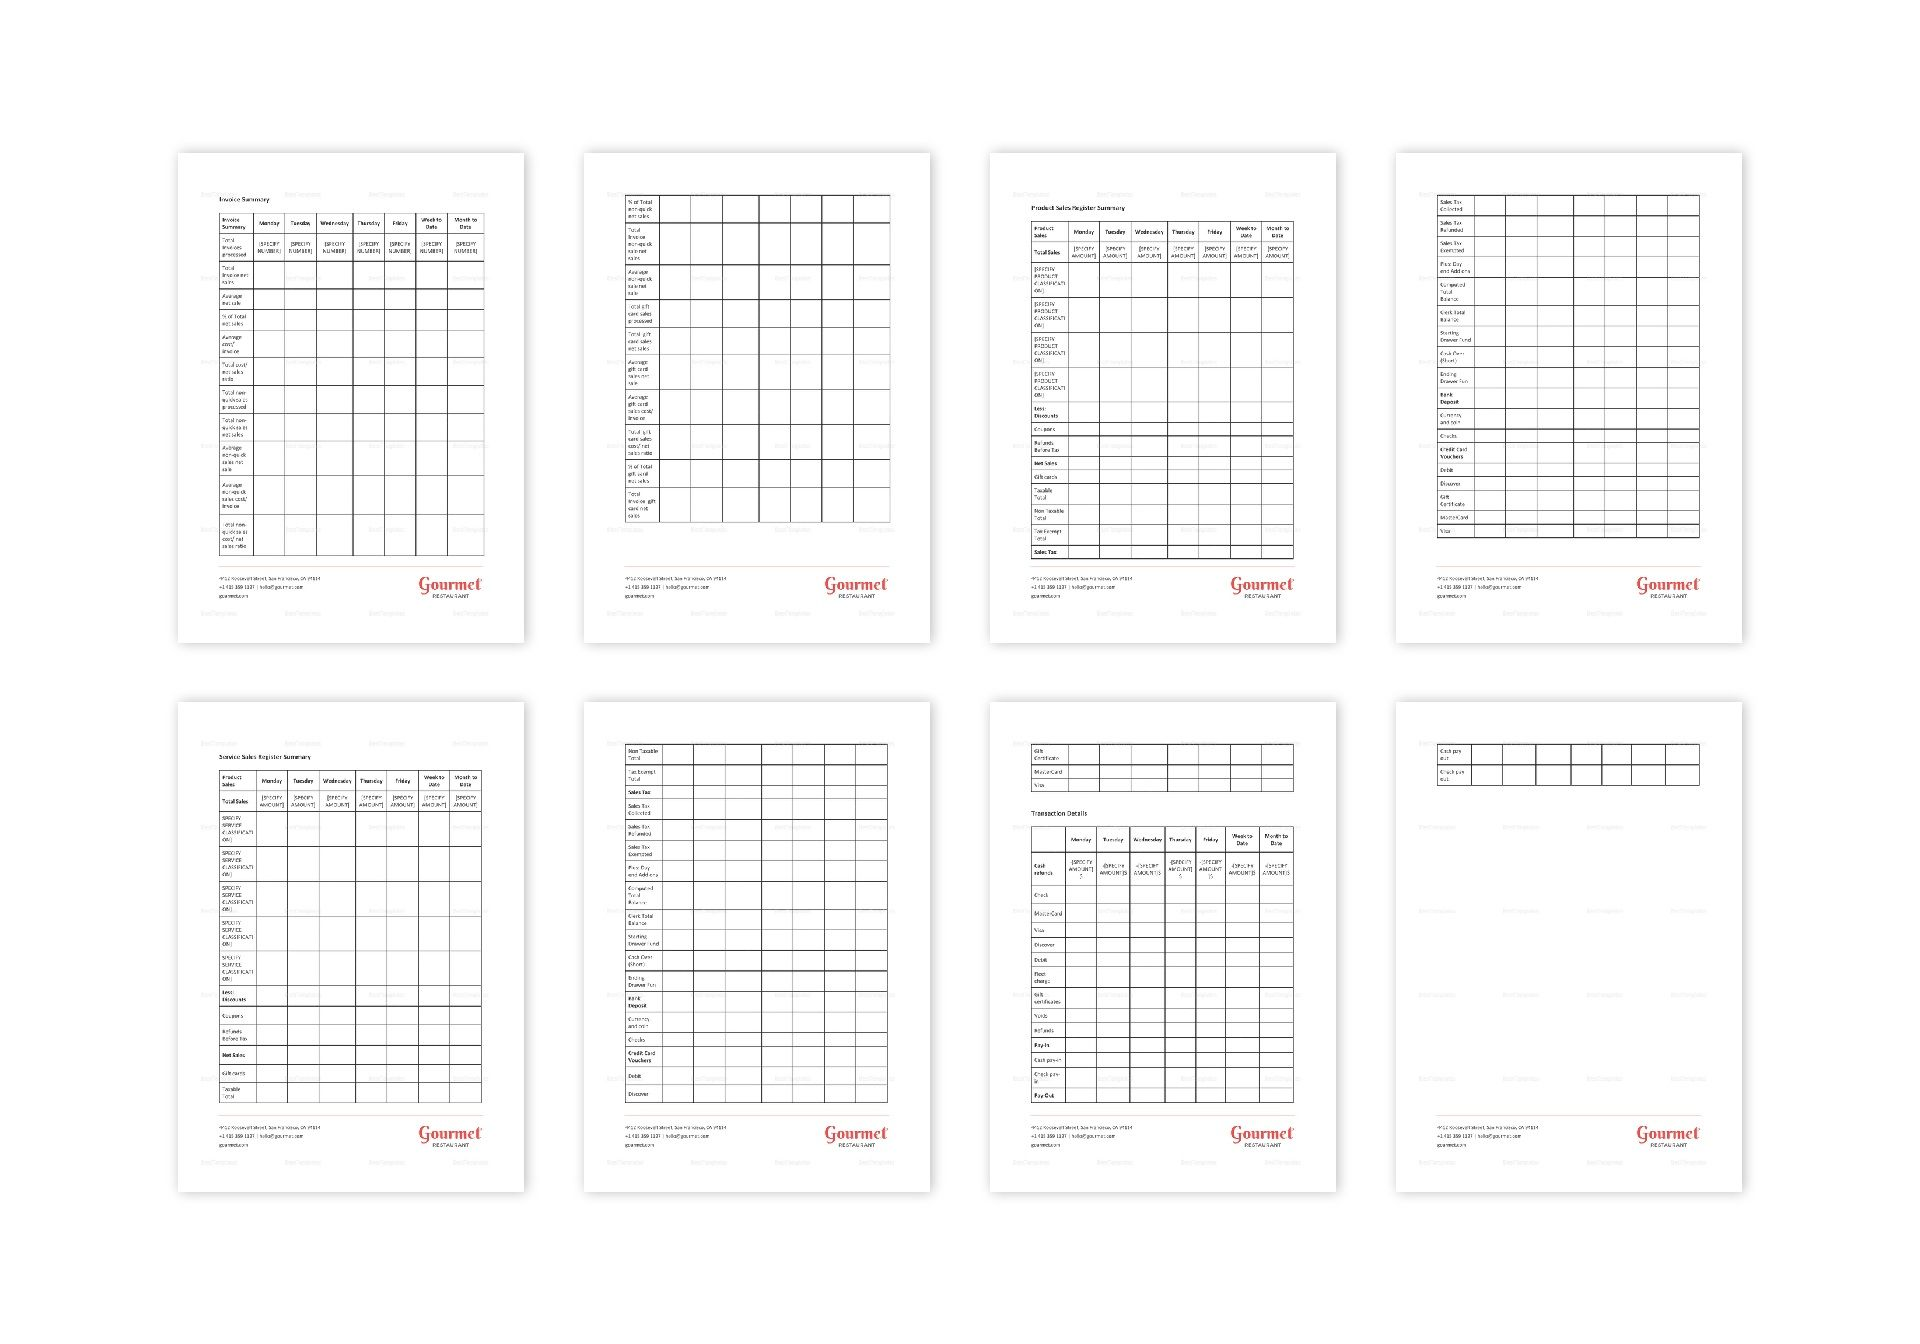 Restaurant Sales Tracking Template in Word, Apple Pages